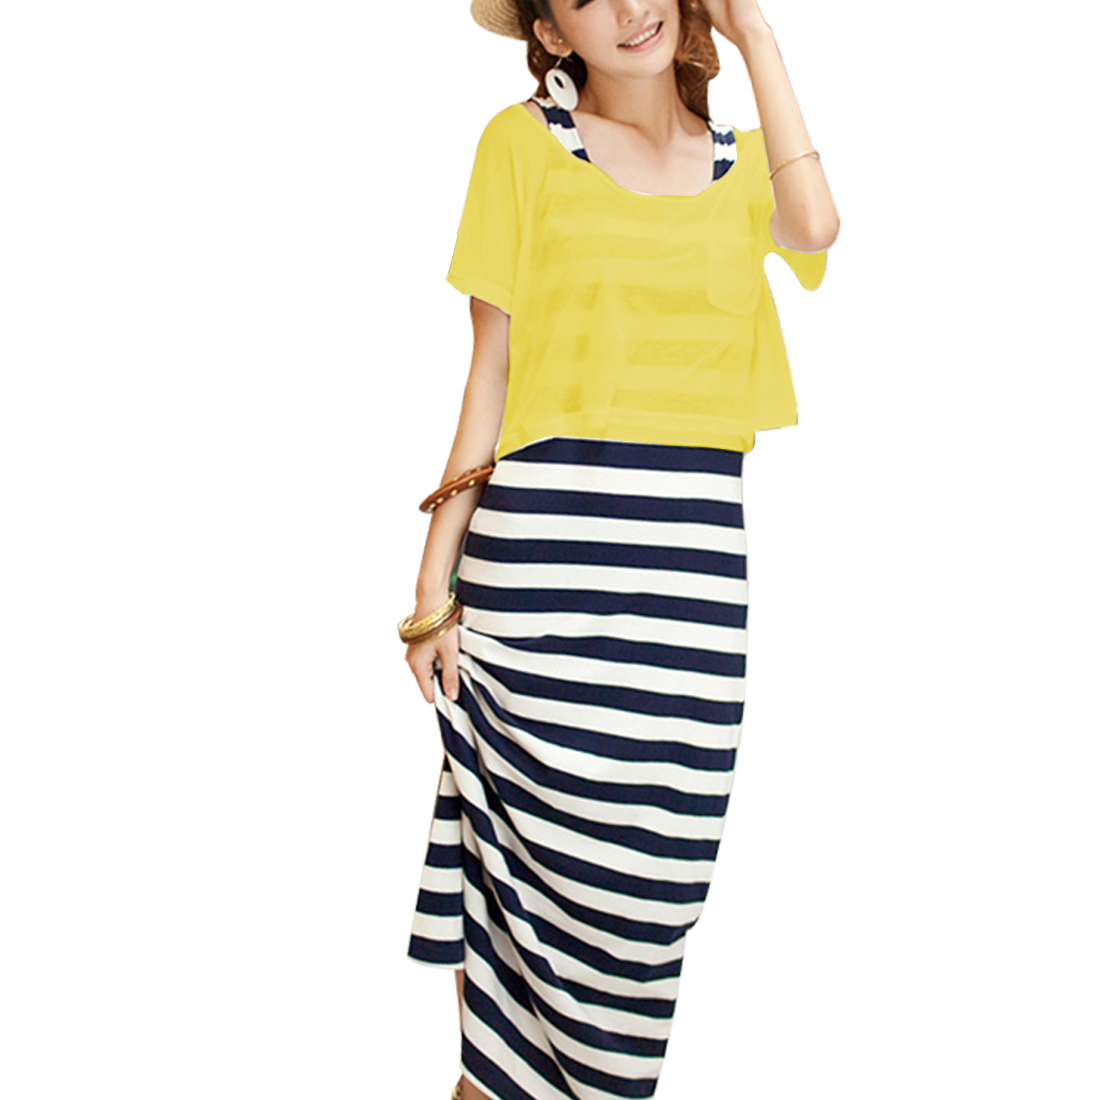 Fashional Pure Yellow Casual Loose Top Blouse S for Woman